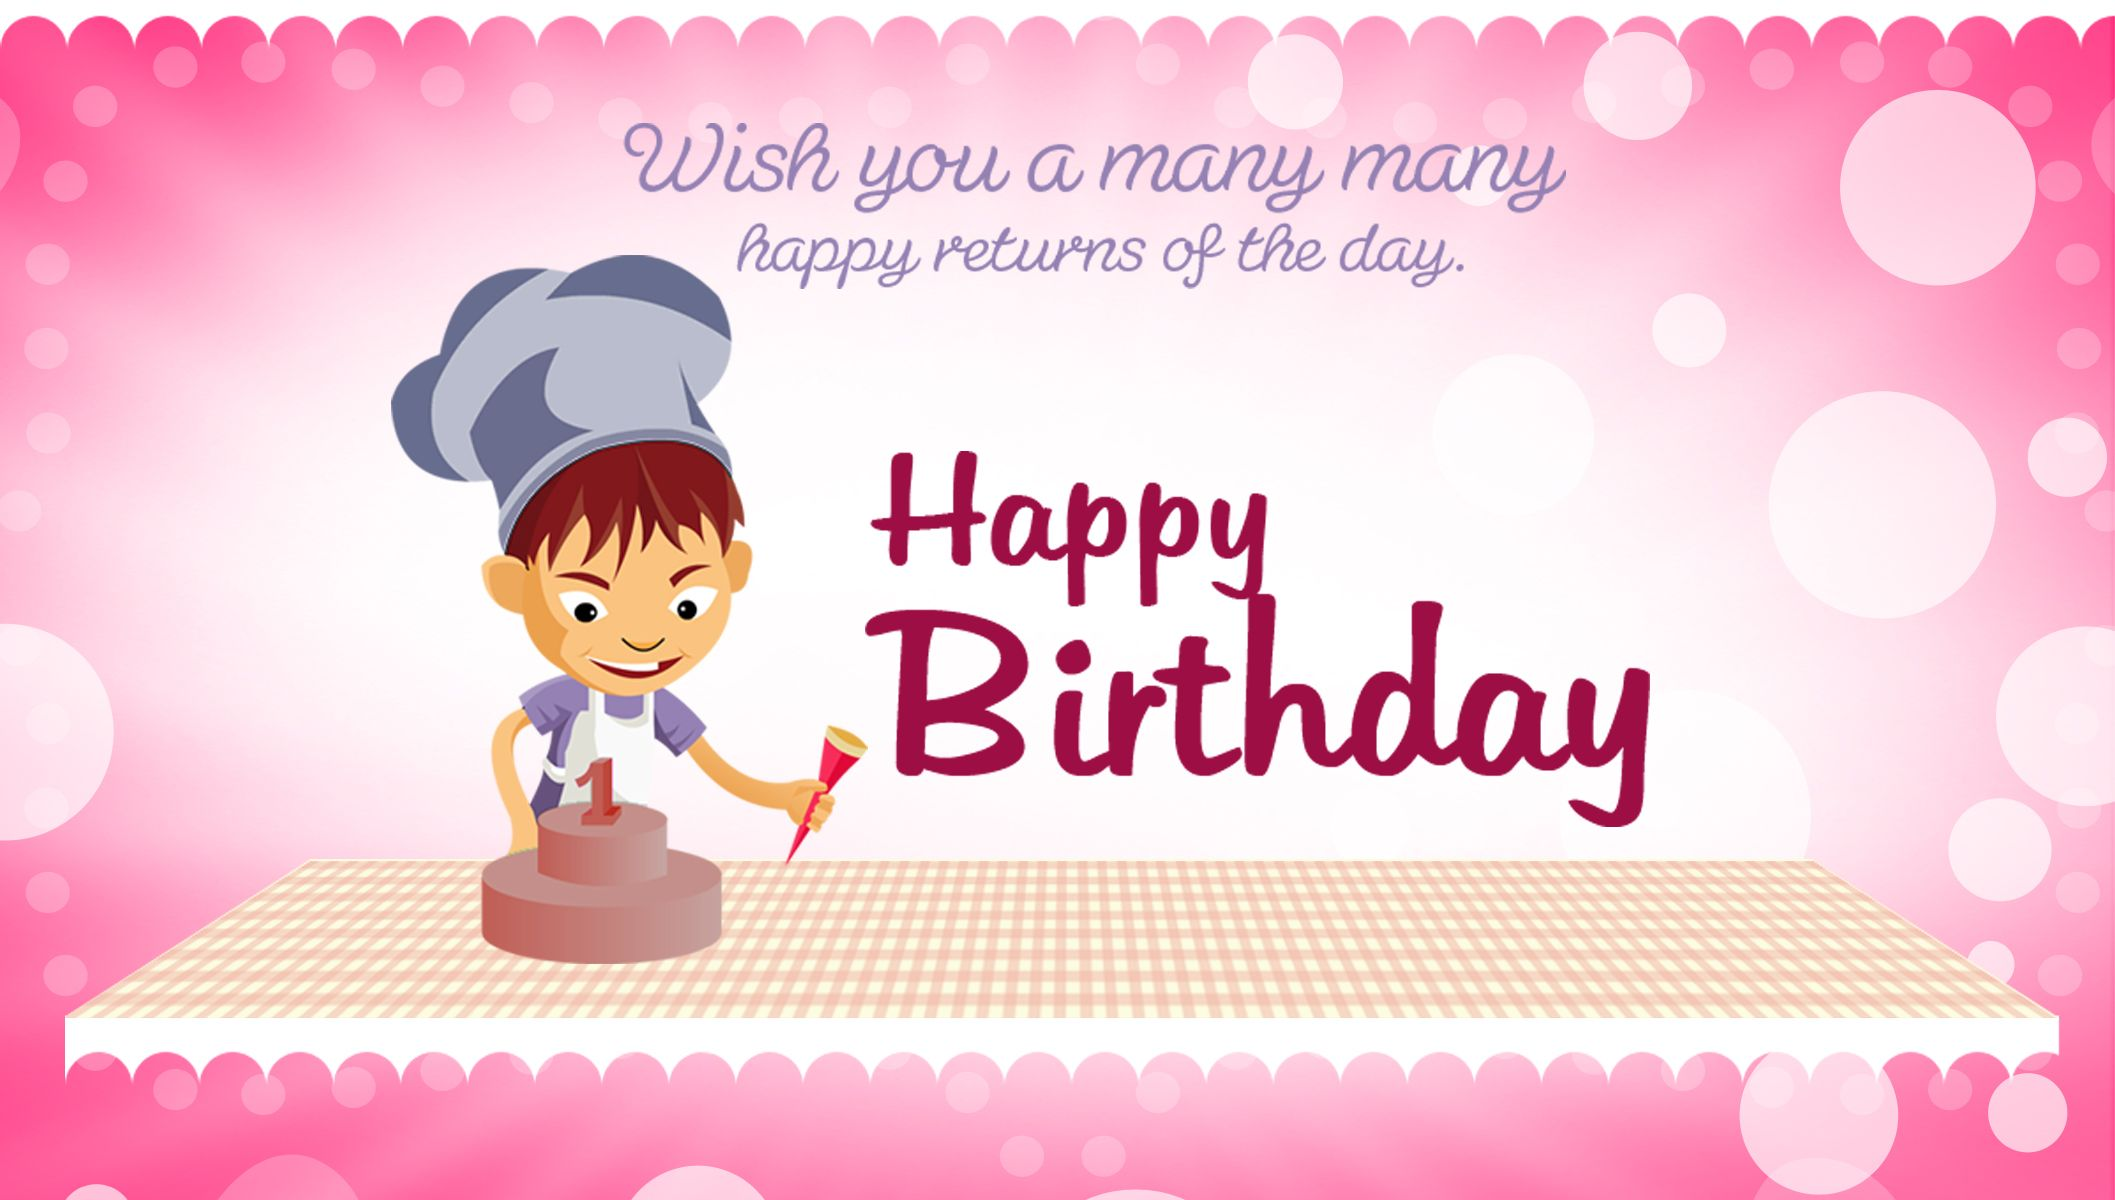 Https123birthdaywishes xc zx 3 pinterest explore happy birthday honey and more bookmarktalkfo Choice Image